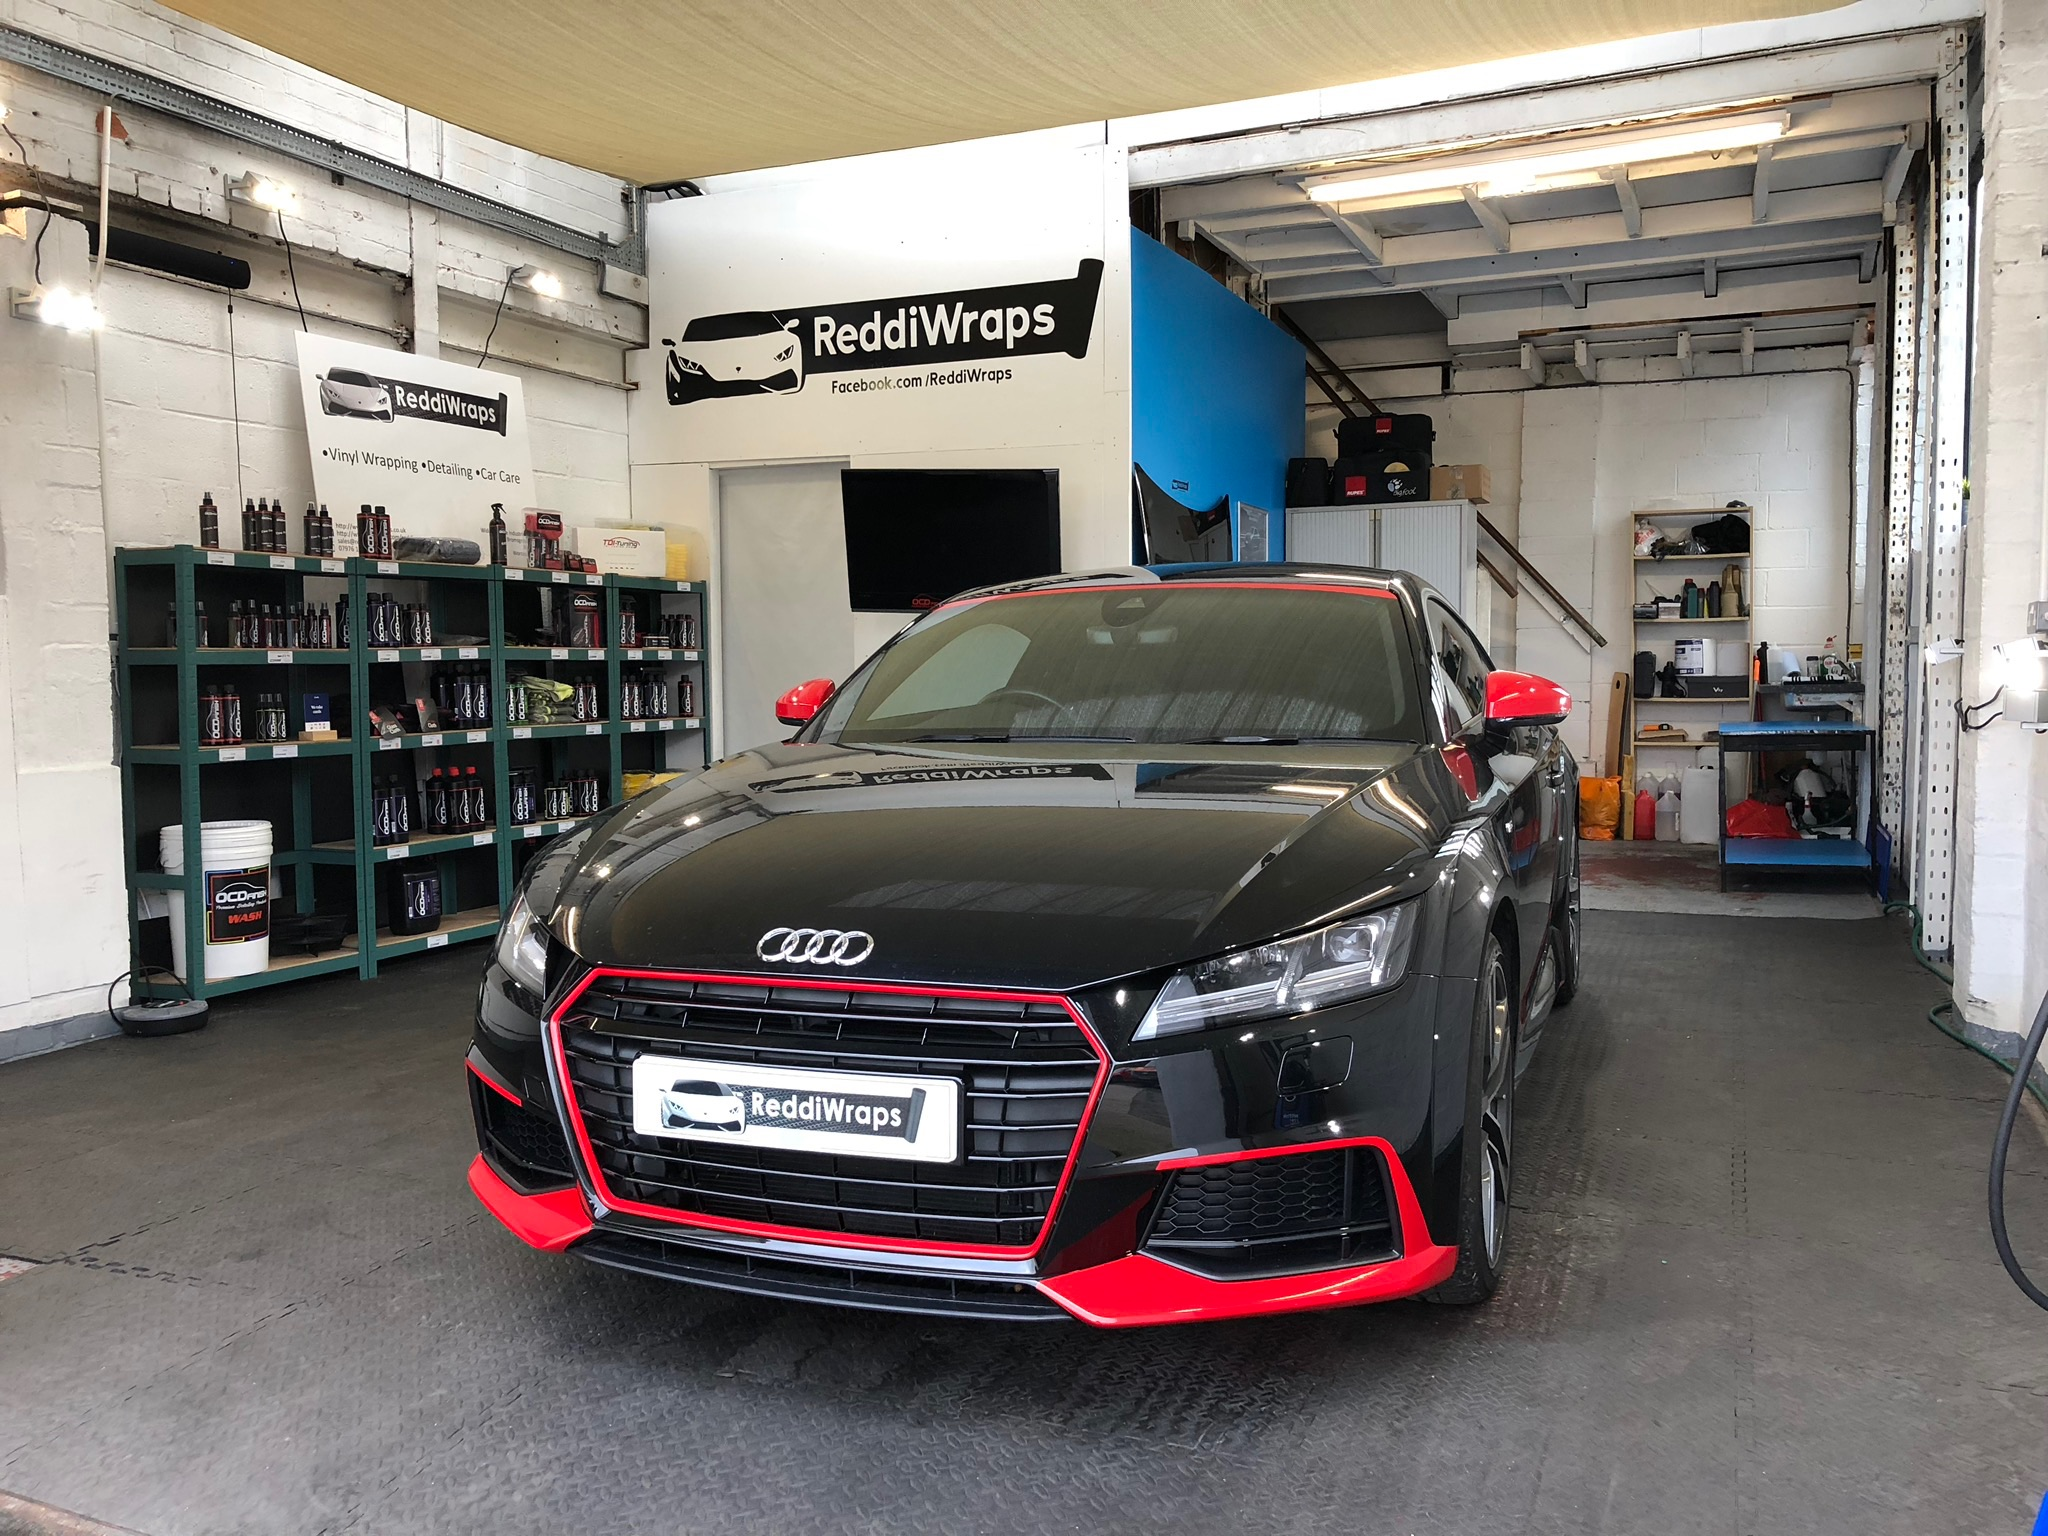 Audi TT Customisation